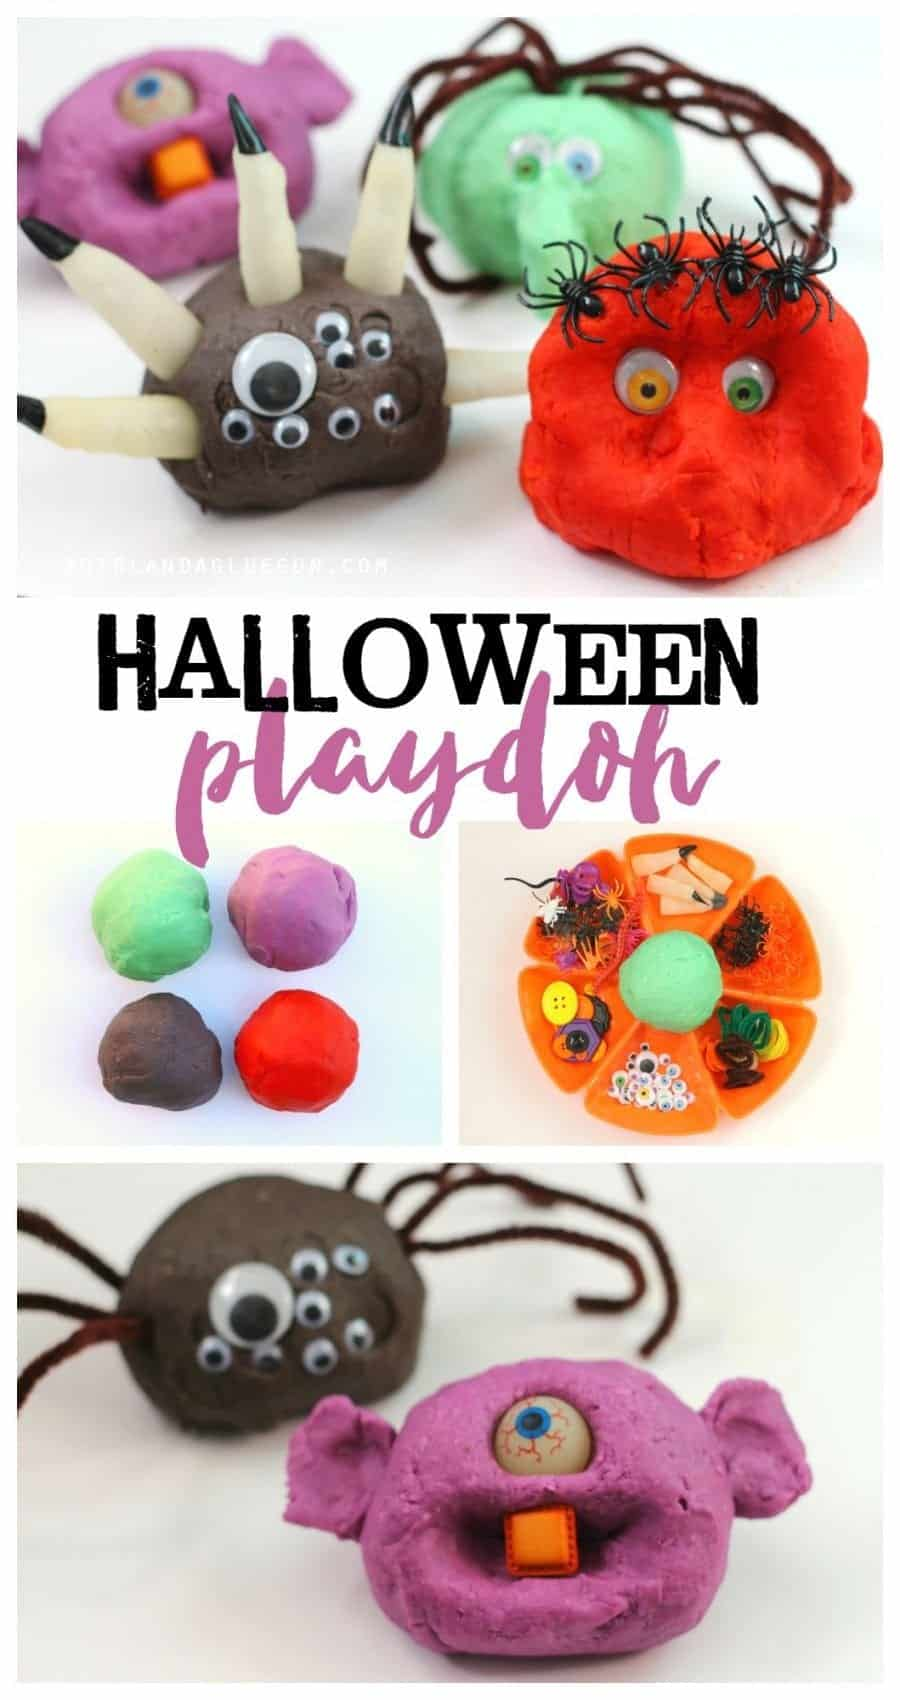 halloween-playdoh-for-a-fun-activity-at-classroom-parties-900x1700